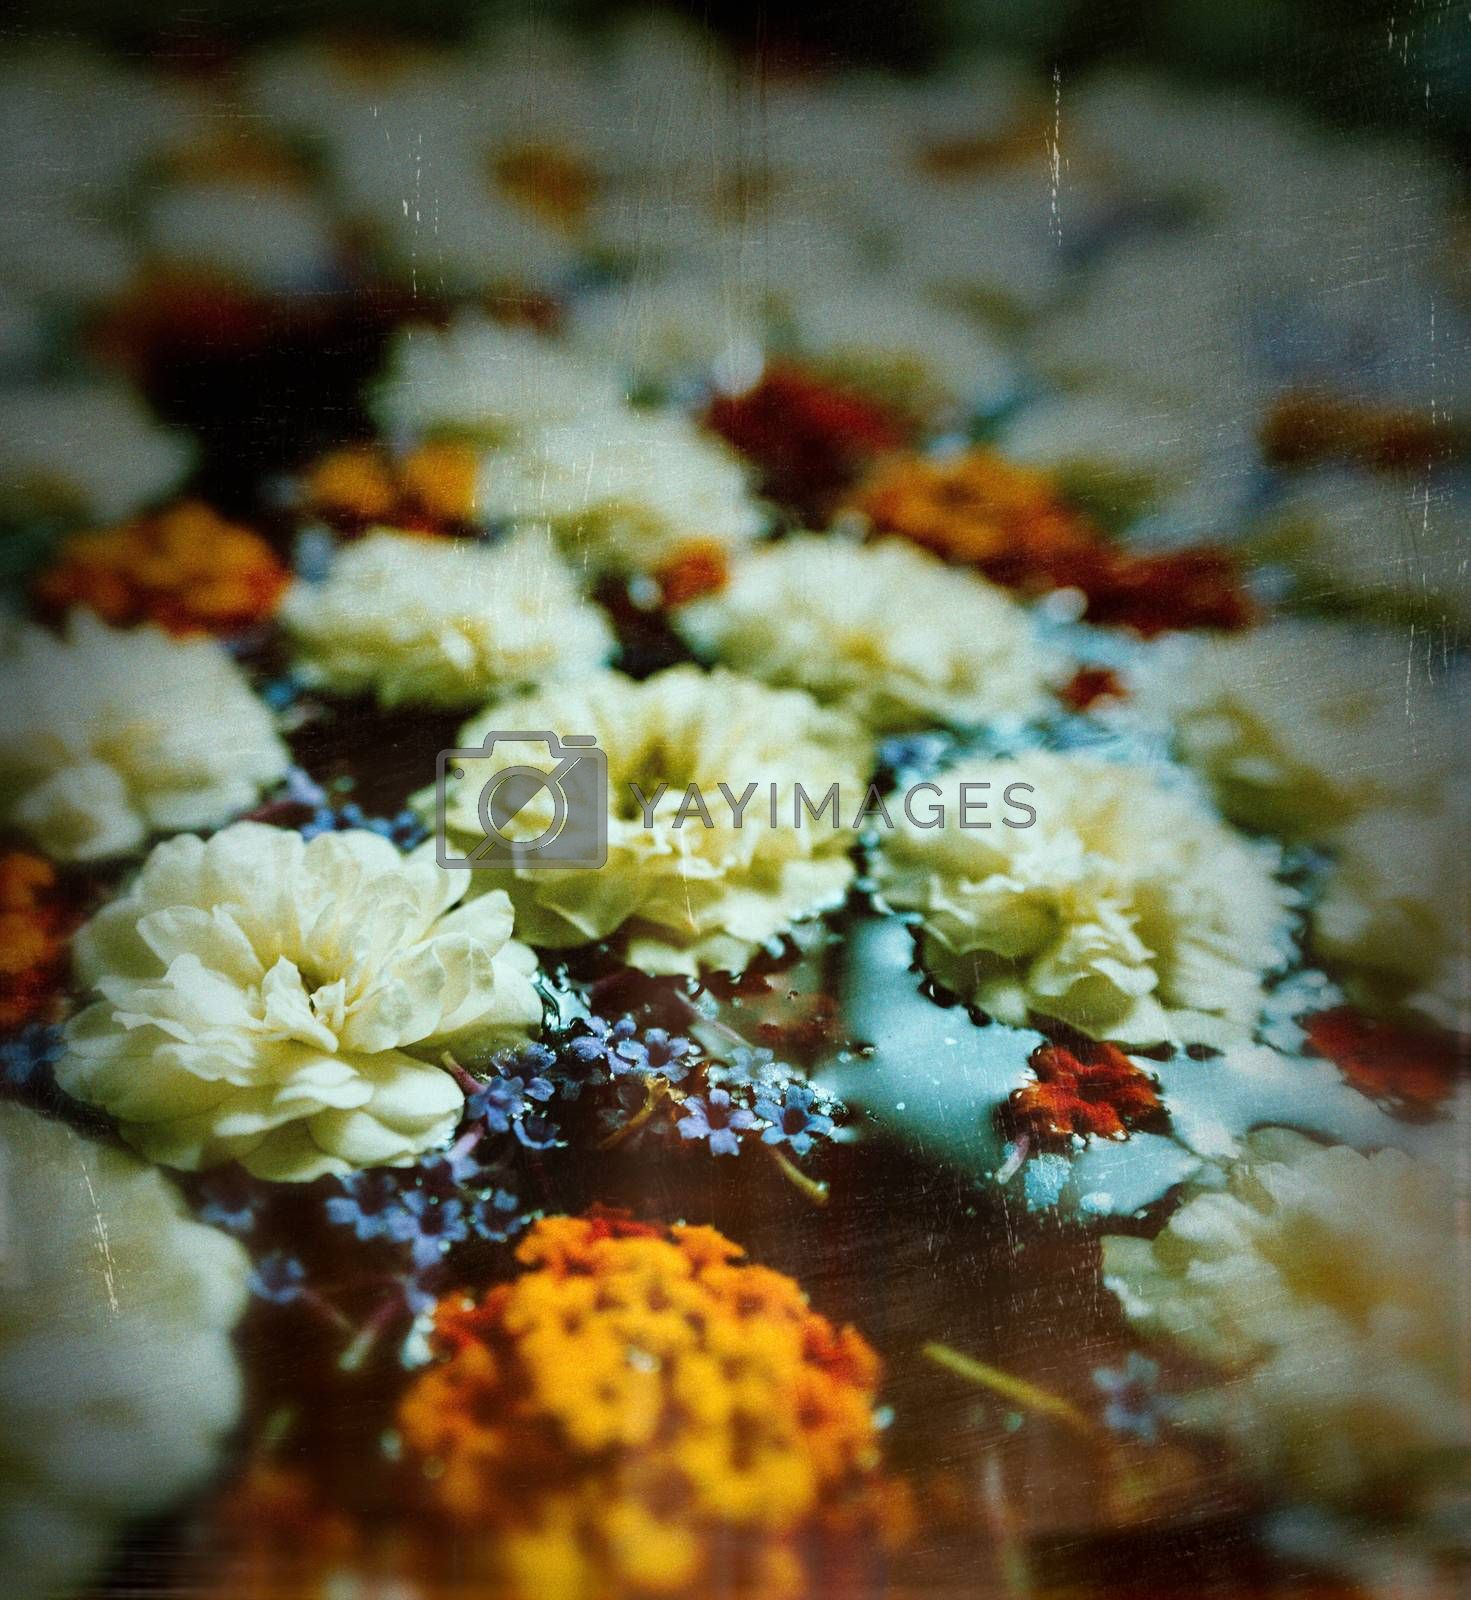 Flowers on water with vignette, film grain and scratches for a vintage look